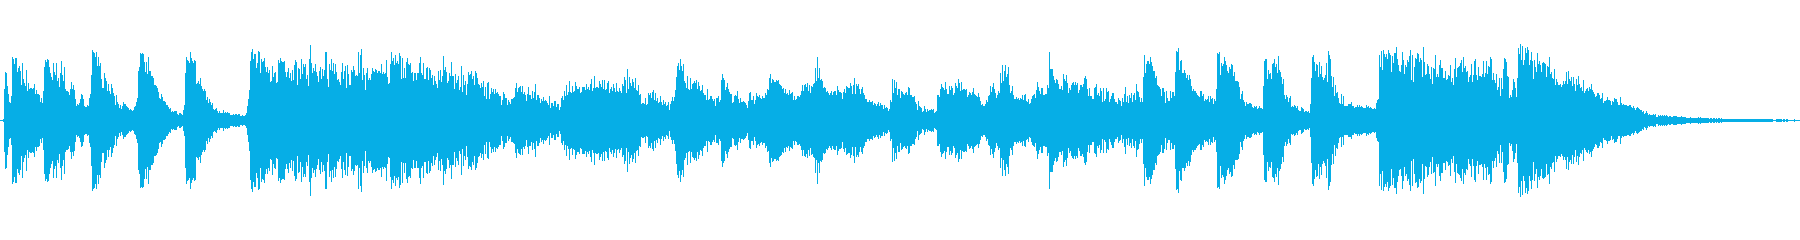 Big band jazz style jingles's reproduced waveform